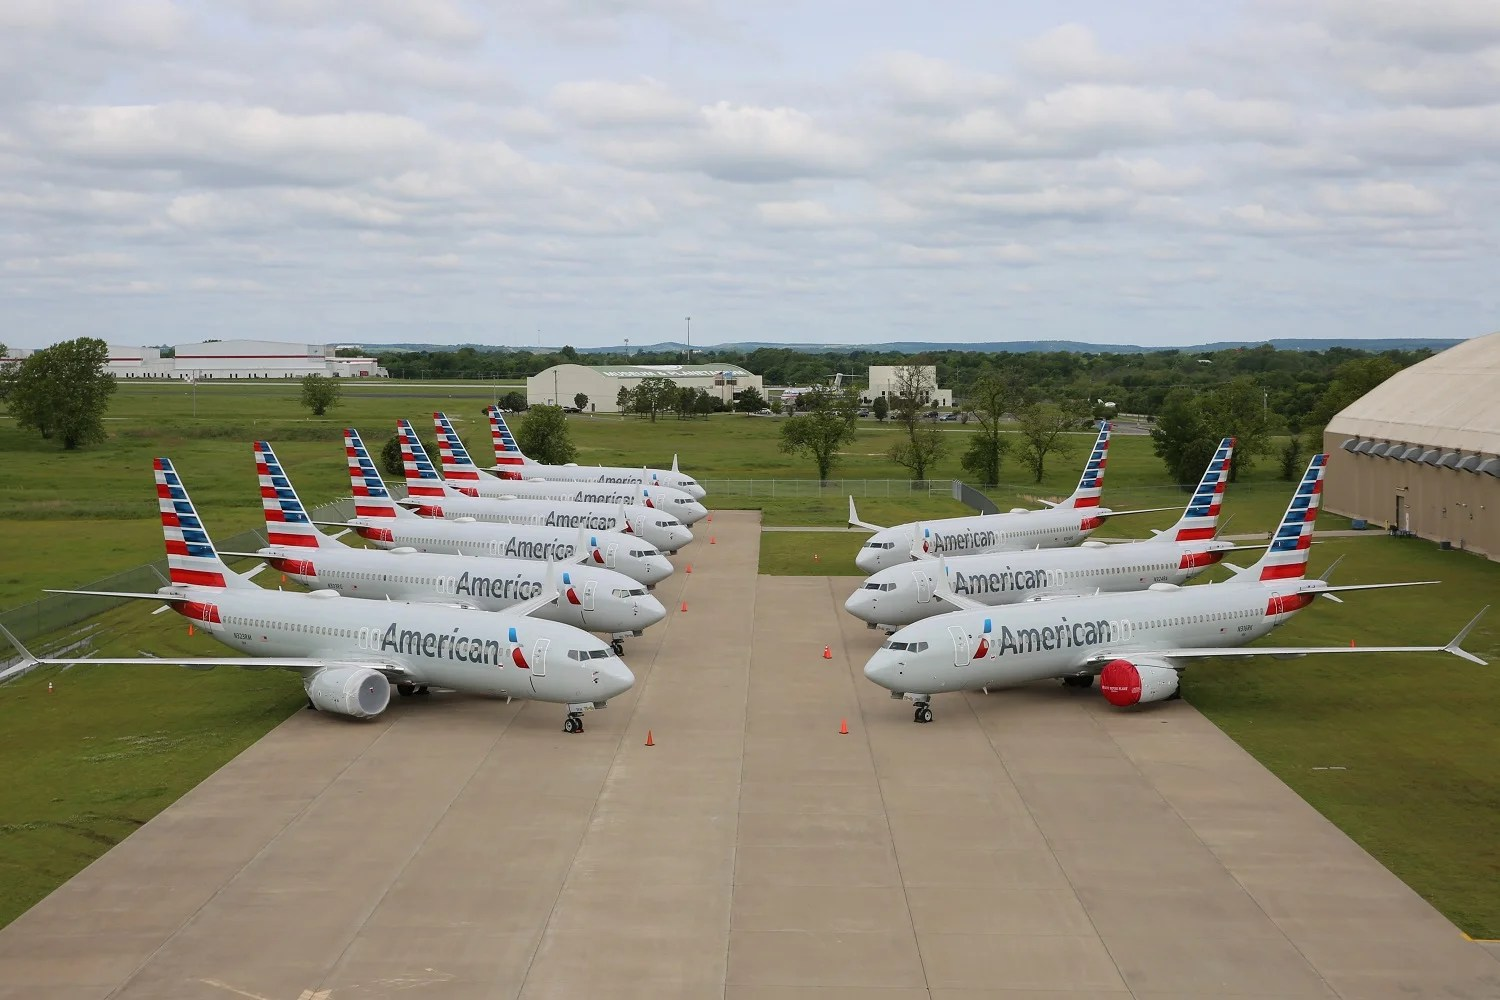 American Airlines Schedules New 737 MAX Routes, Despite the Grounding